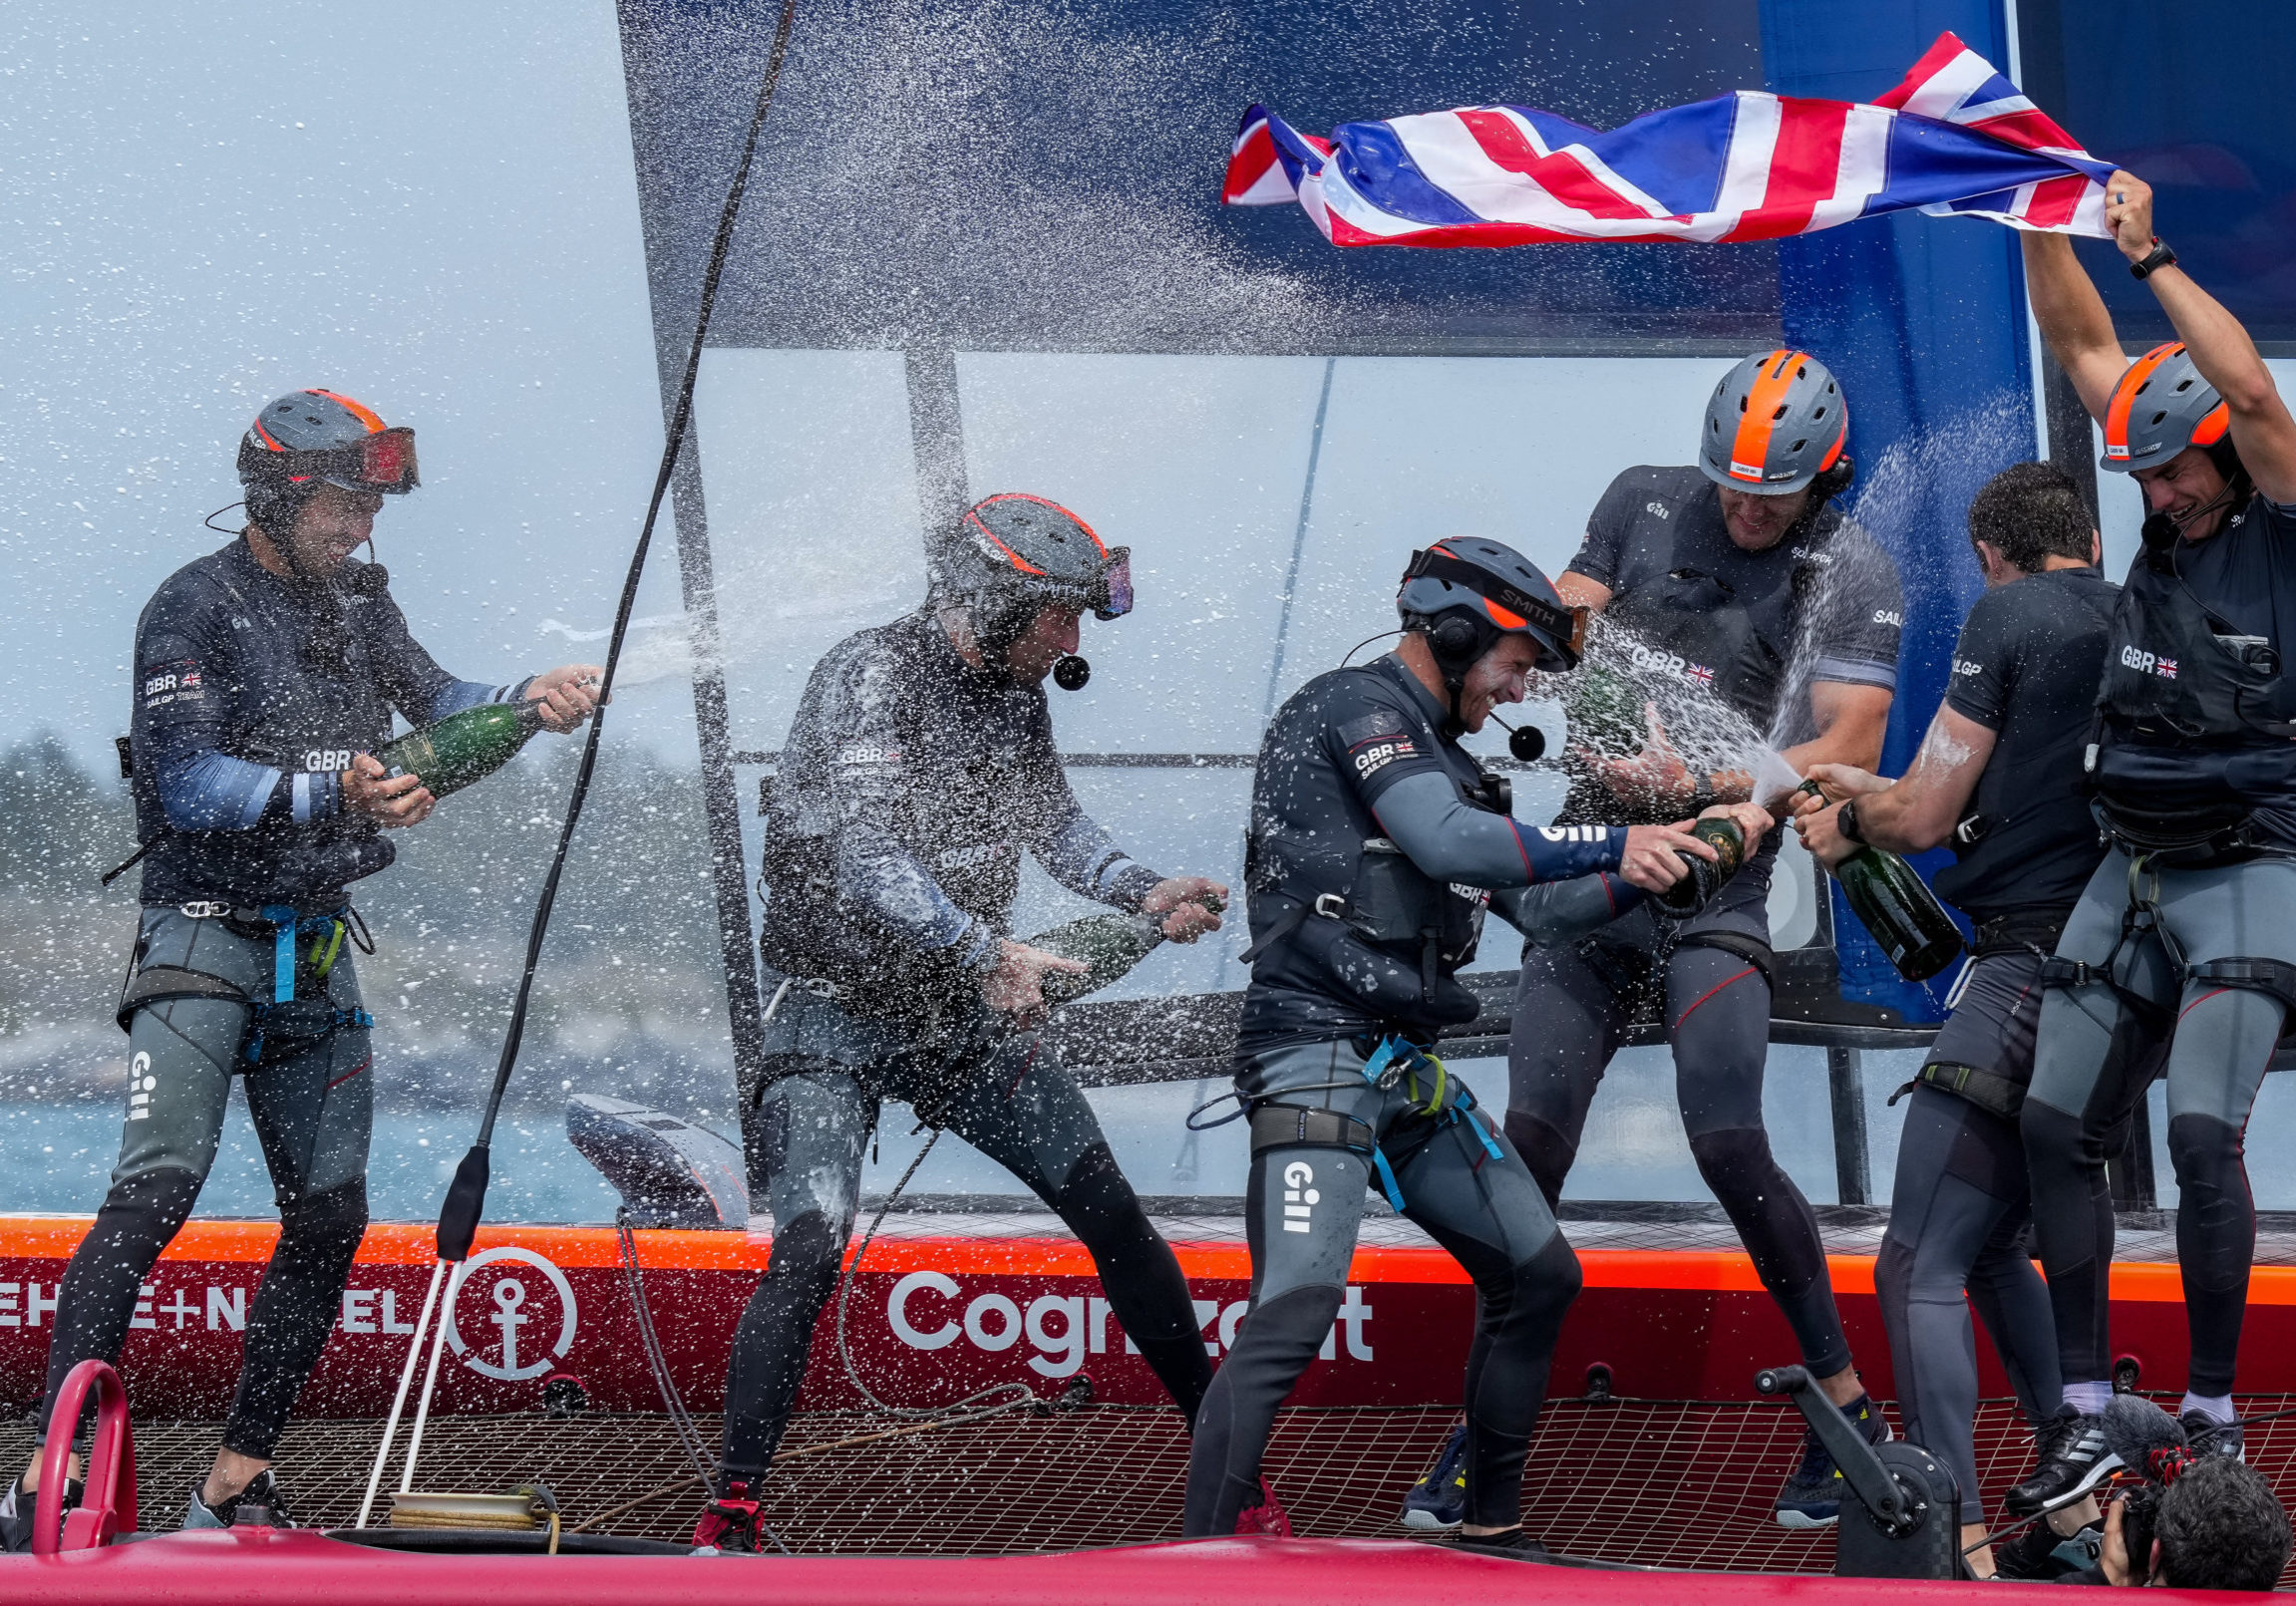 Sir Ben Ainslie and the Great Britain SailGP Team presented by INEOS remain on their F50 due to COVID-19 restrictions to celebrate their win with Champagne Barons de Rothschild in the final race on Race Day 2. Bermuda SailGP presented by Hamilton Princess, Event 1 Season 2 in Hamilton, Bermuda. 25 April 2021. Photo: Bob Martin for SailGP. Handout image supplied by SailGP